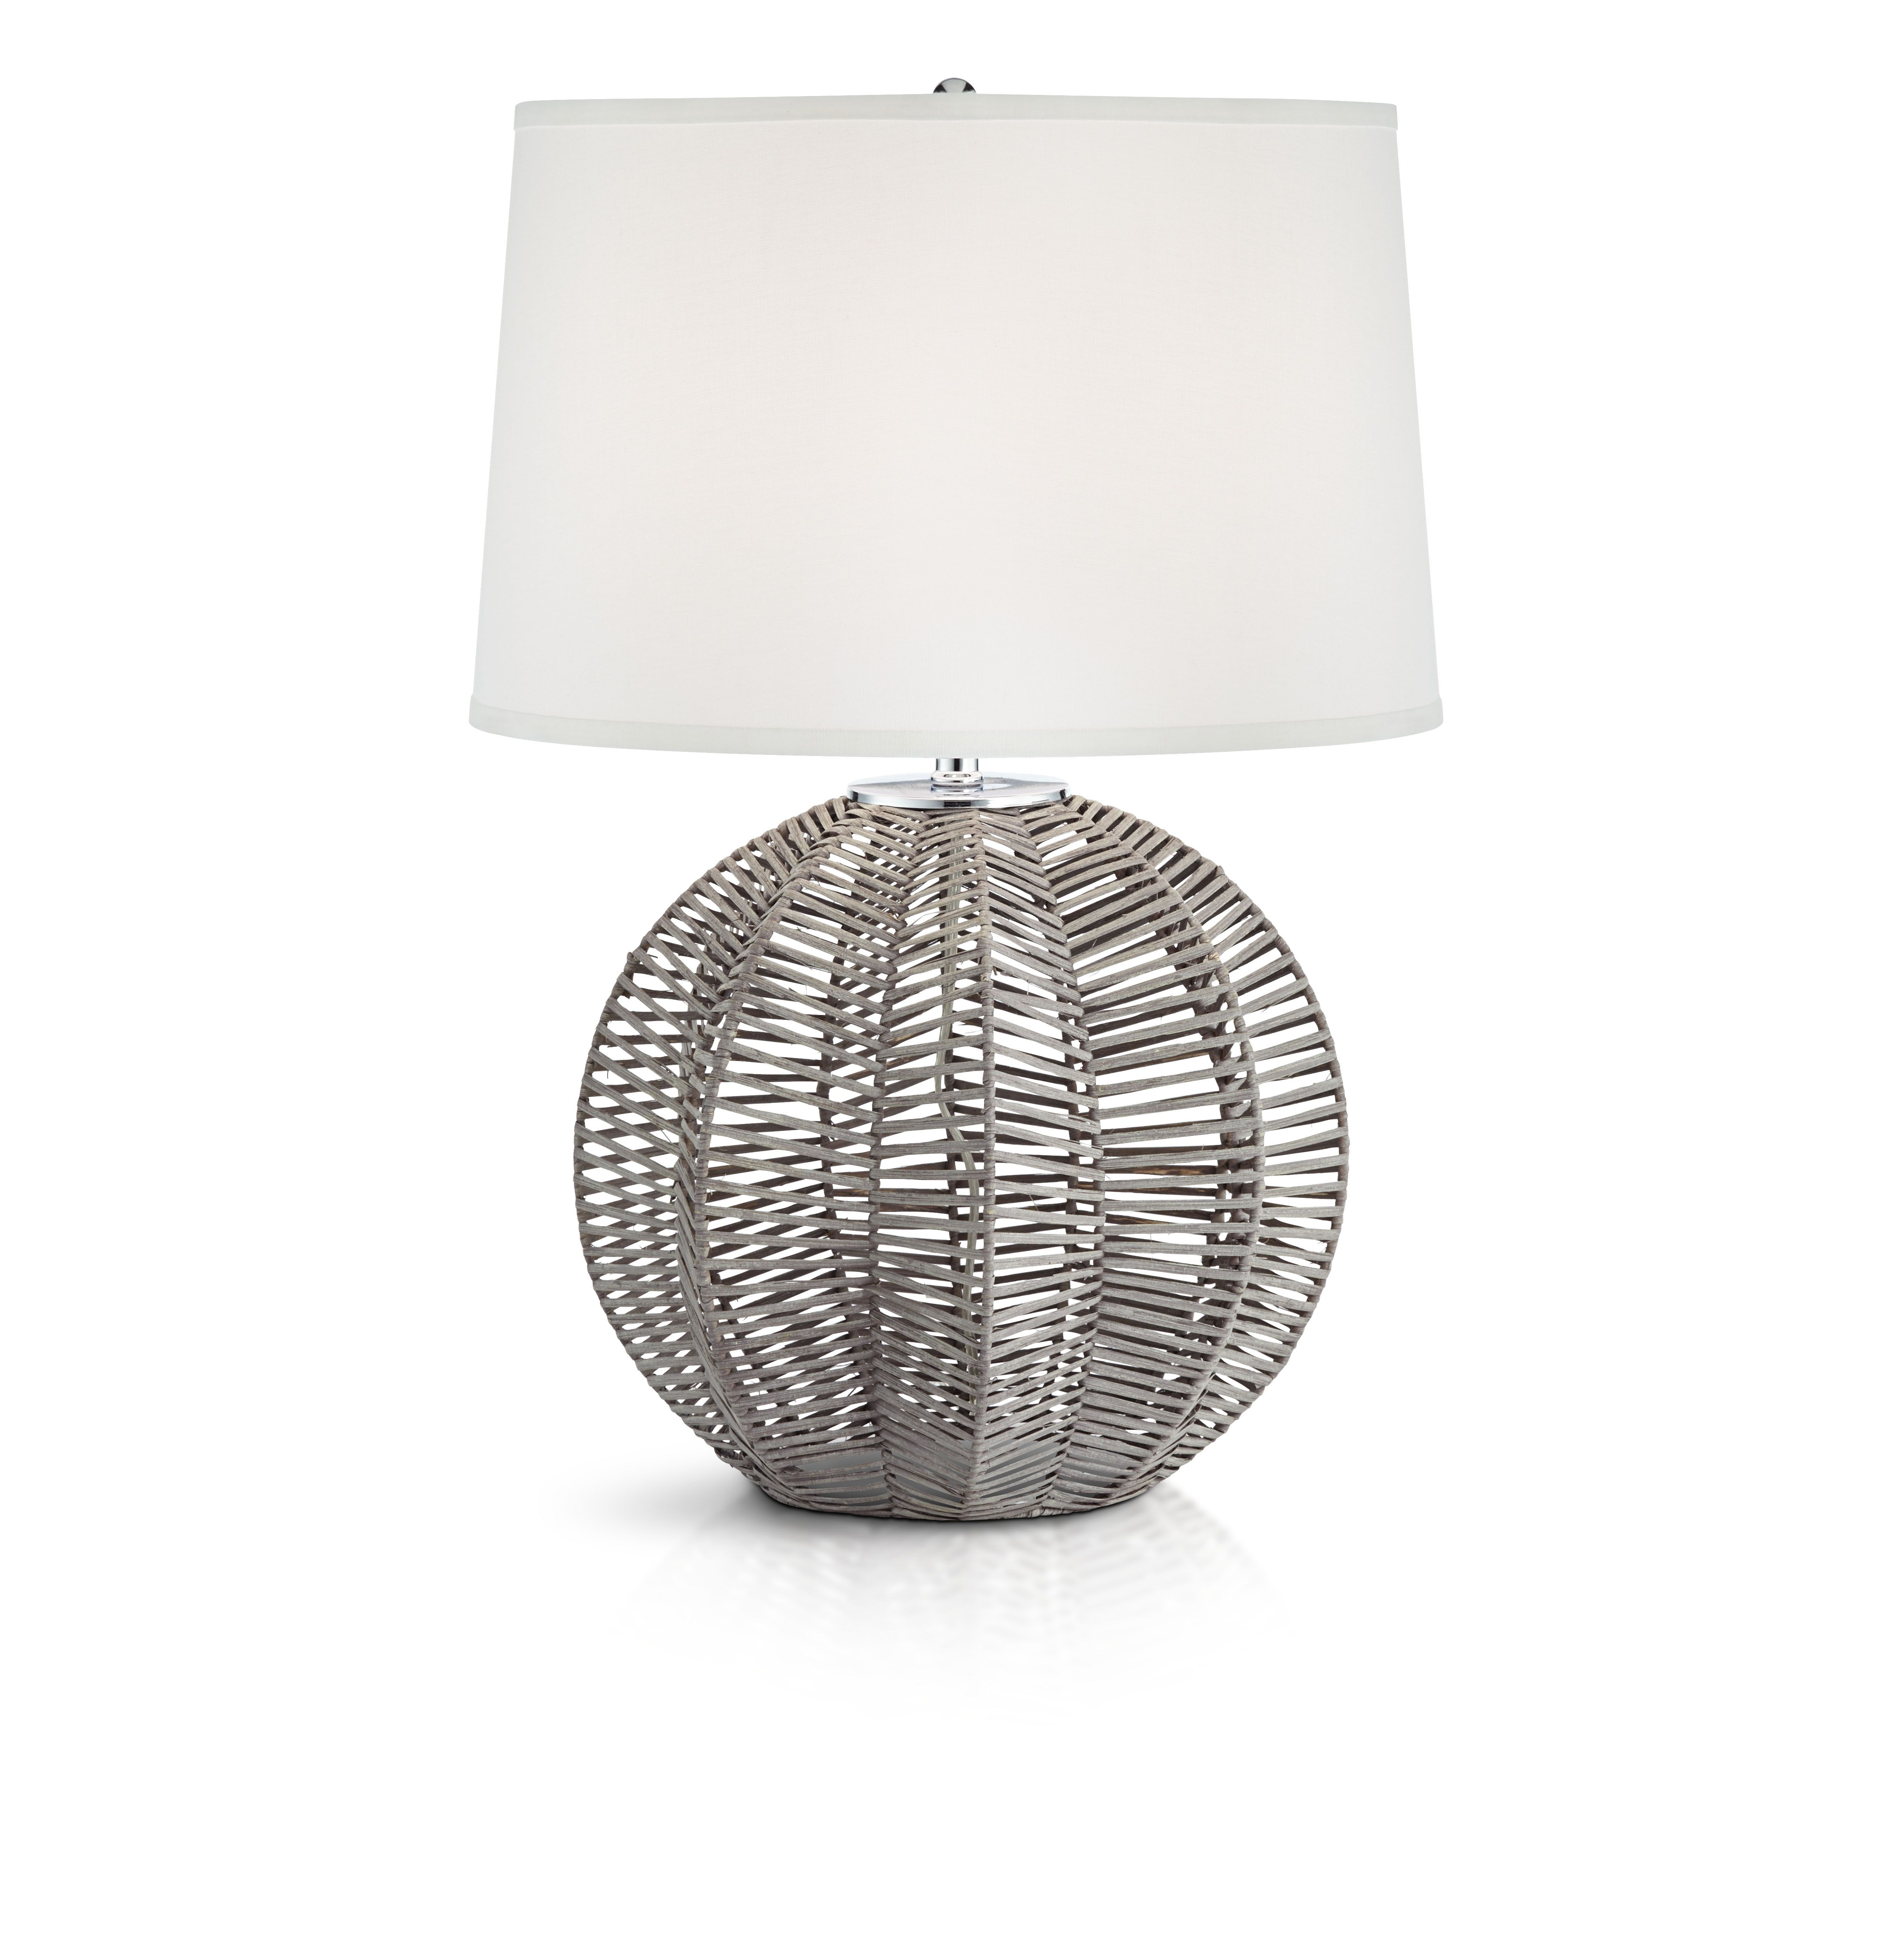 Casual inspired table lamp.  #casual #casualstyle #casualdecor #casualhome #natural #rattan #gray #lighting #lamps #home #homedecor #homedecorating #bedroom #bedroomdecor #livingroom #livingroomdecor #interiordesign #interiorinspiration